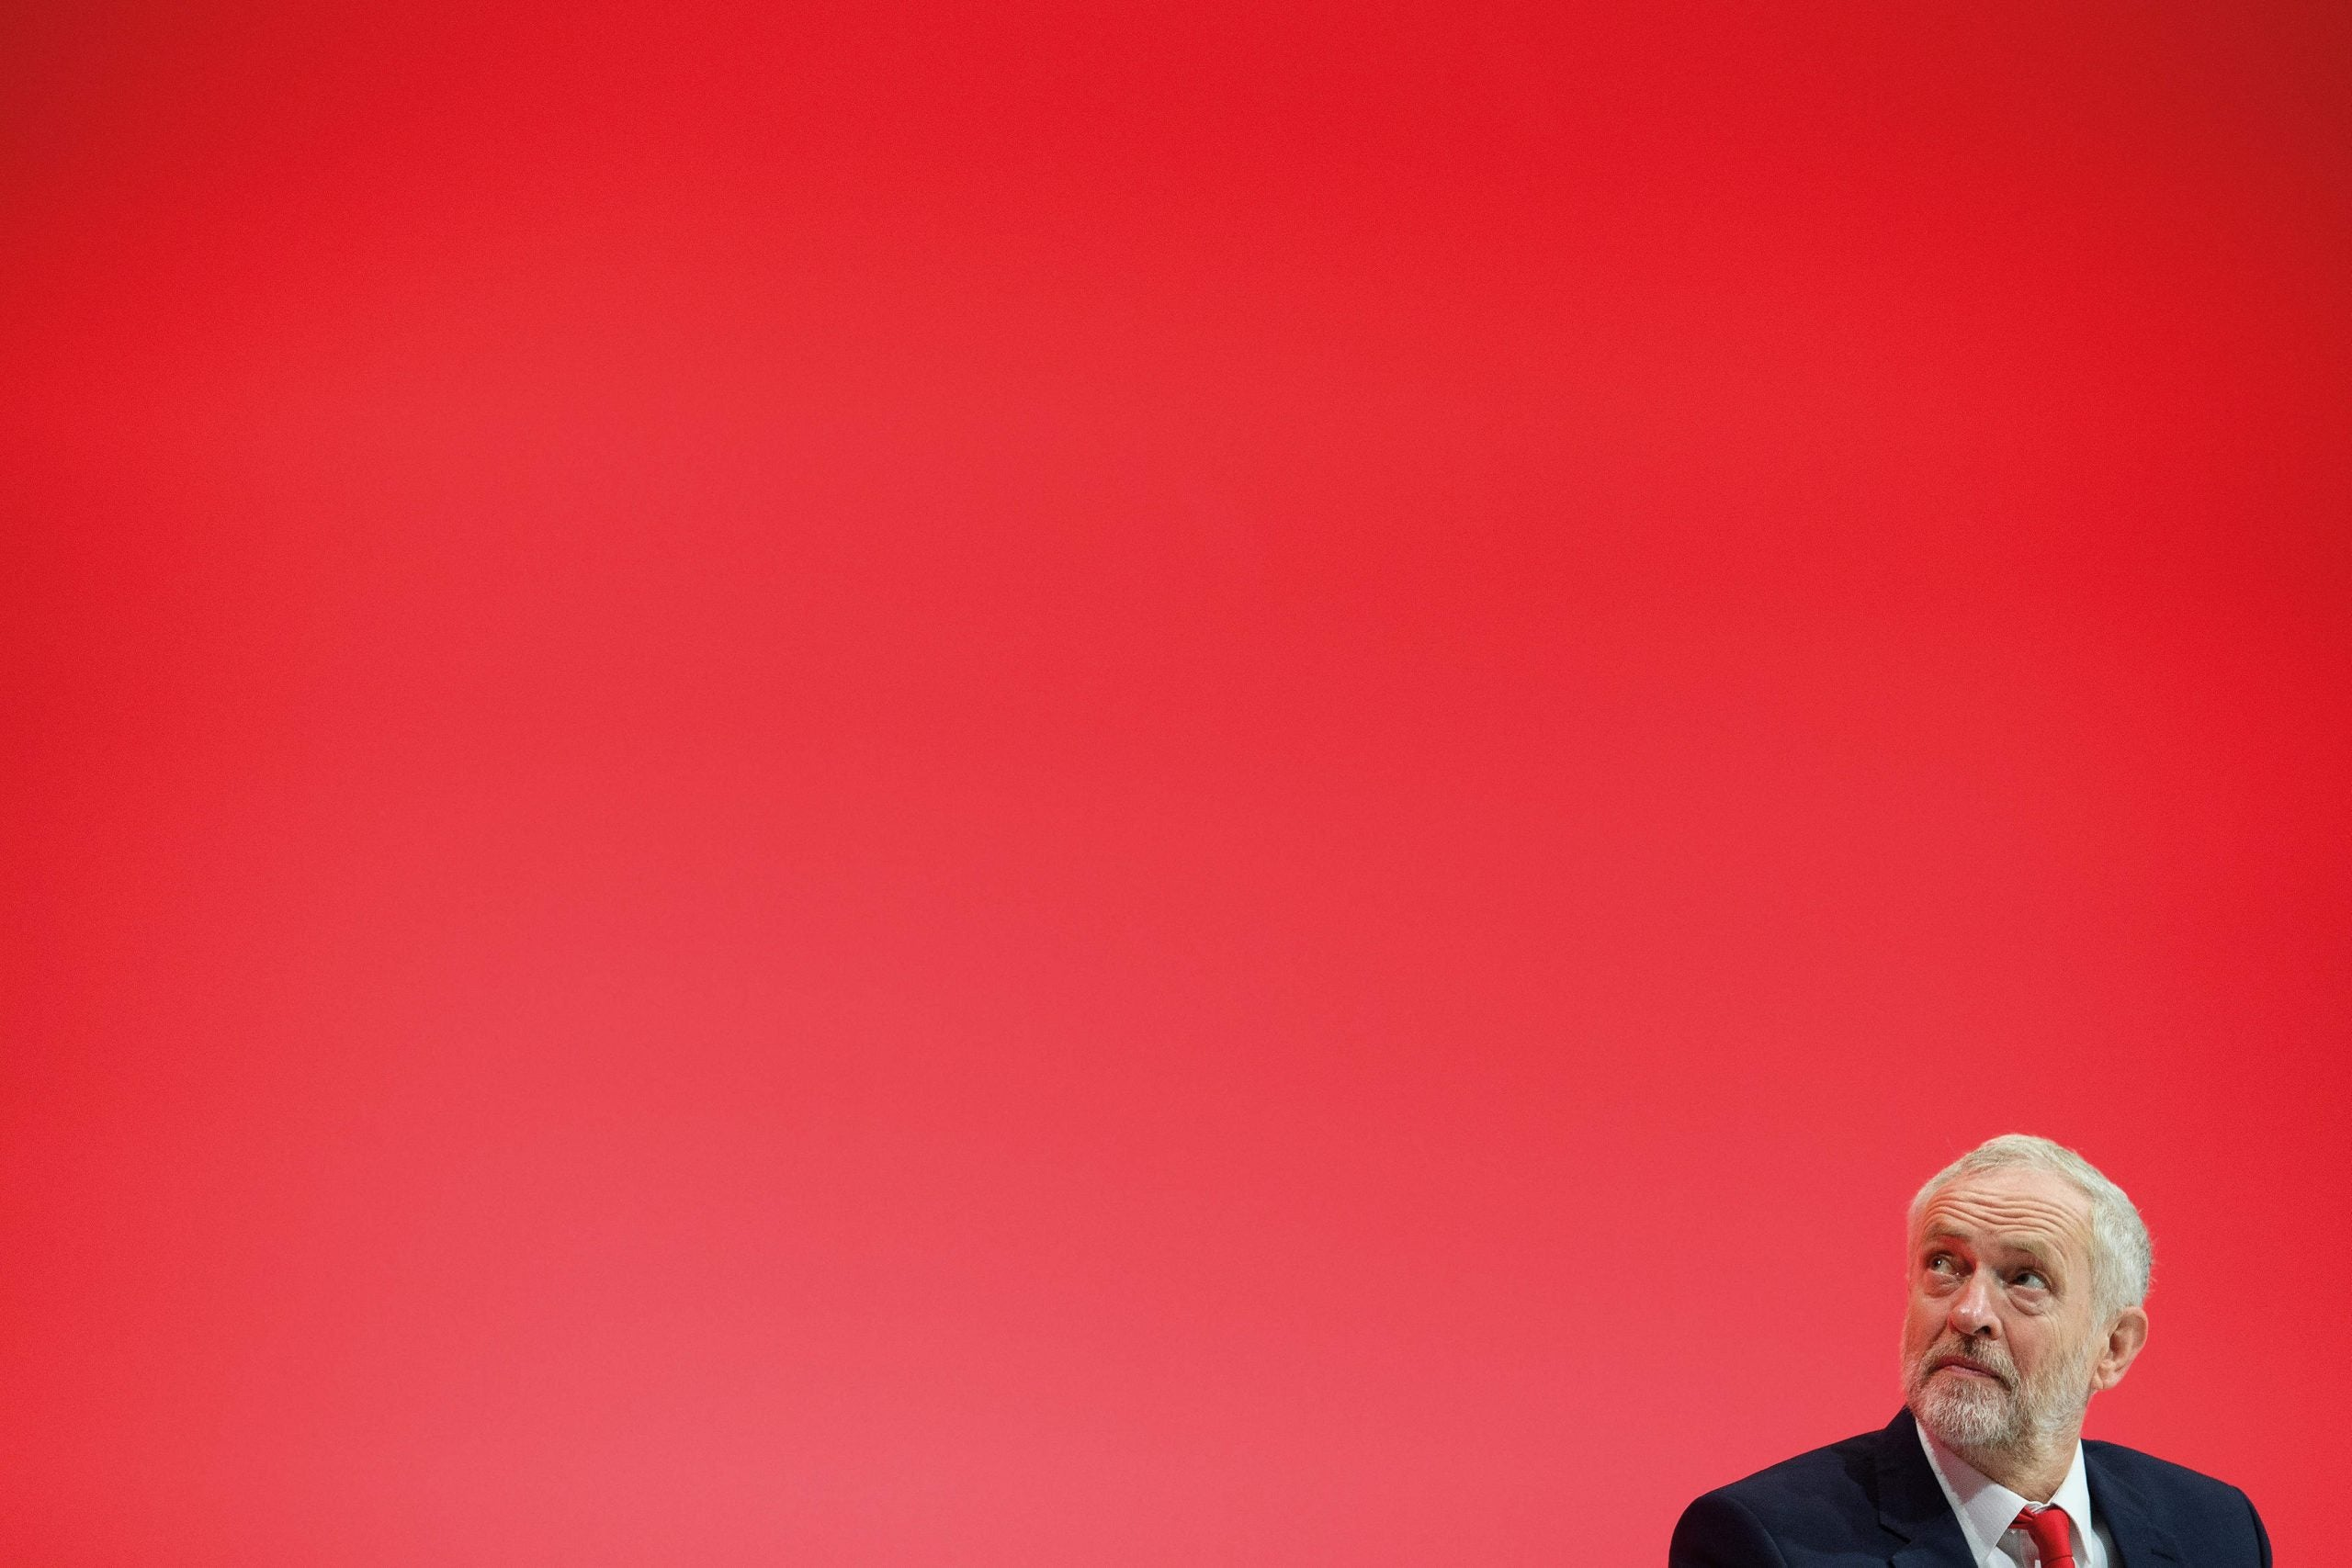 To win power, Labour needs to start talking about giving it away